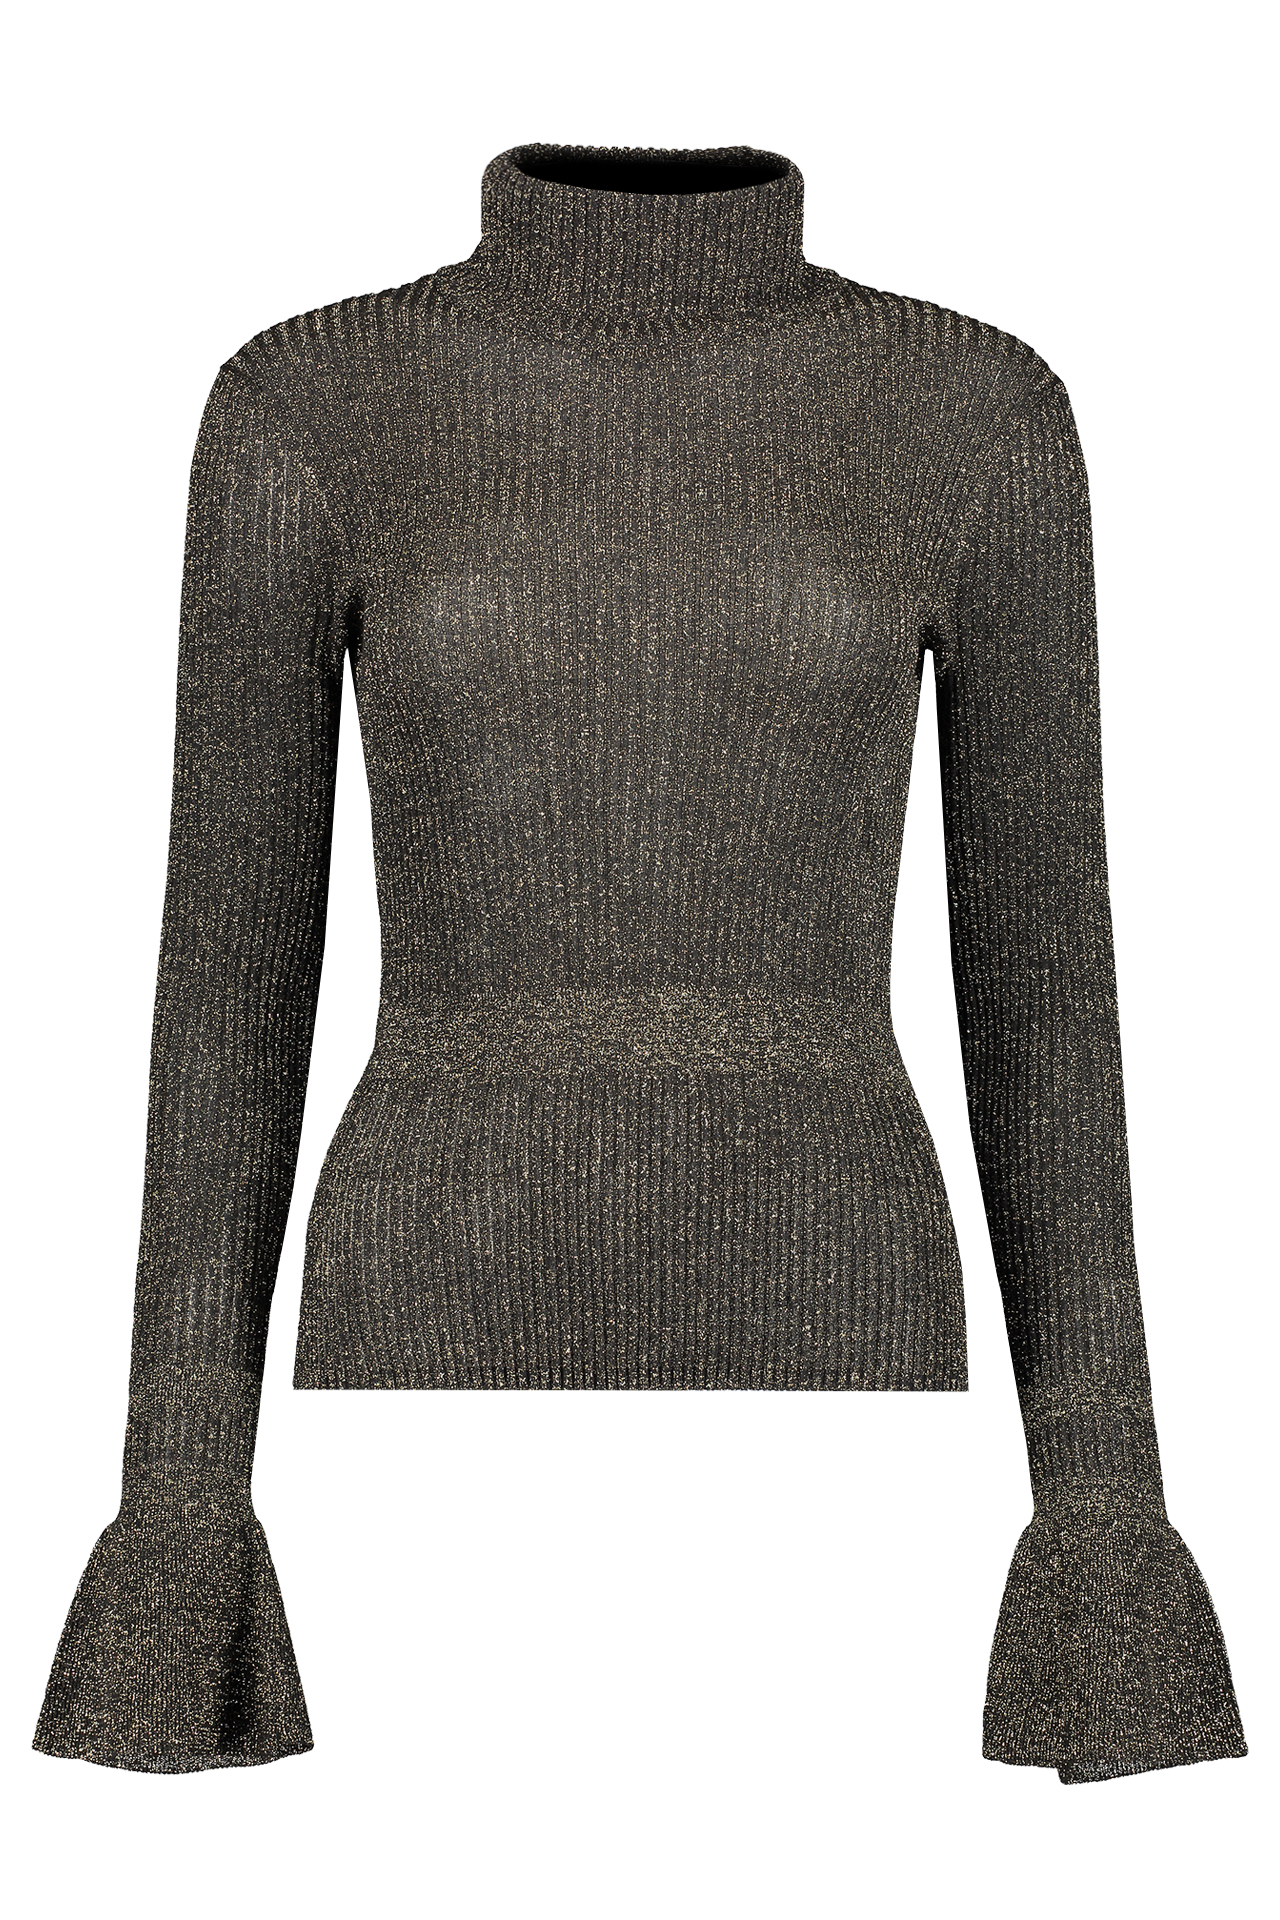 Front view image of Veronica Beard Women's Lilia Turtleneck Pullover Black